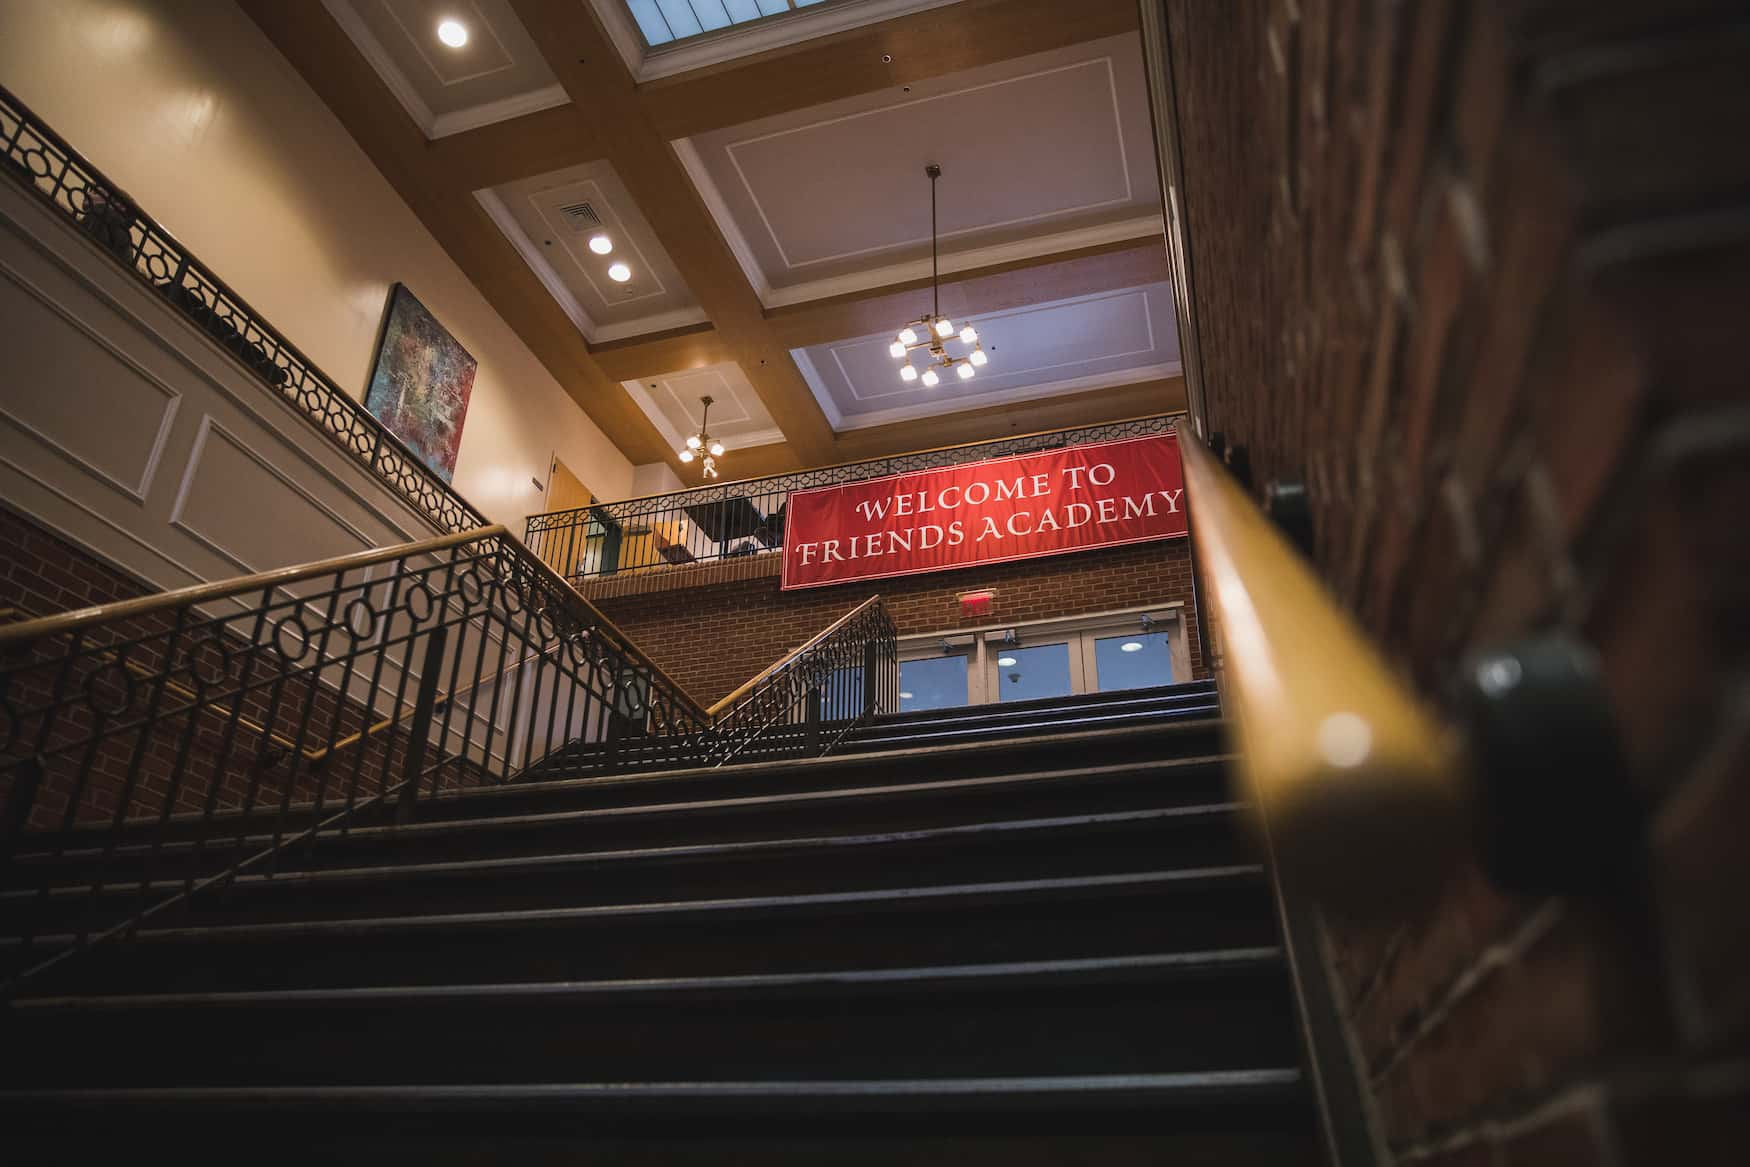 staircase with friends academy banner